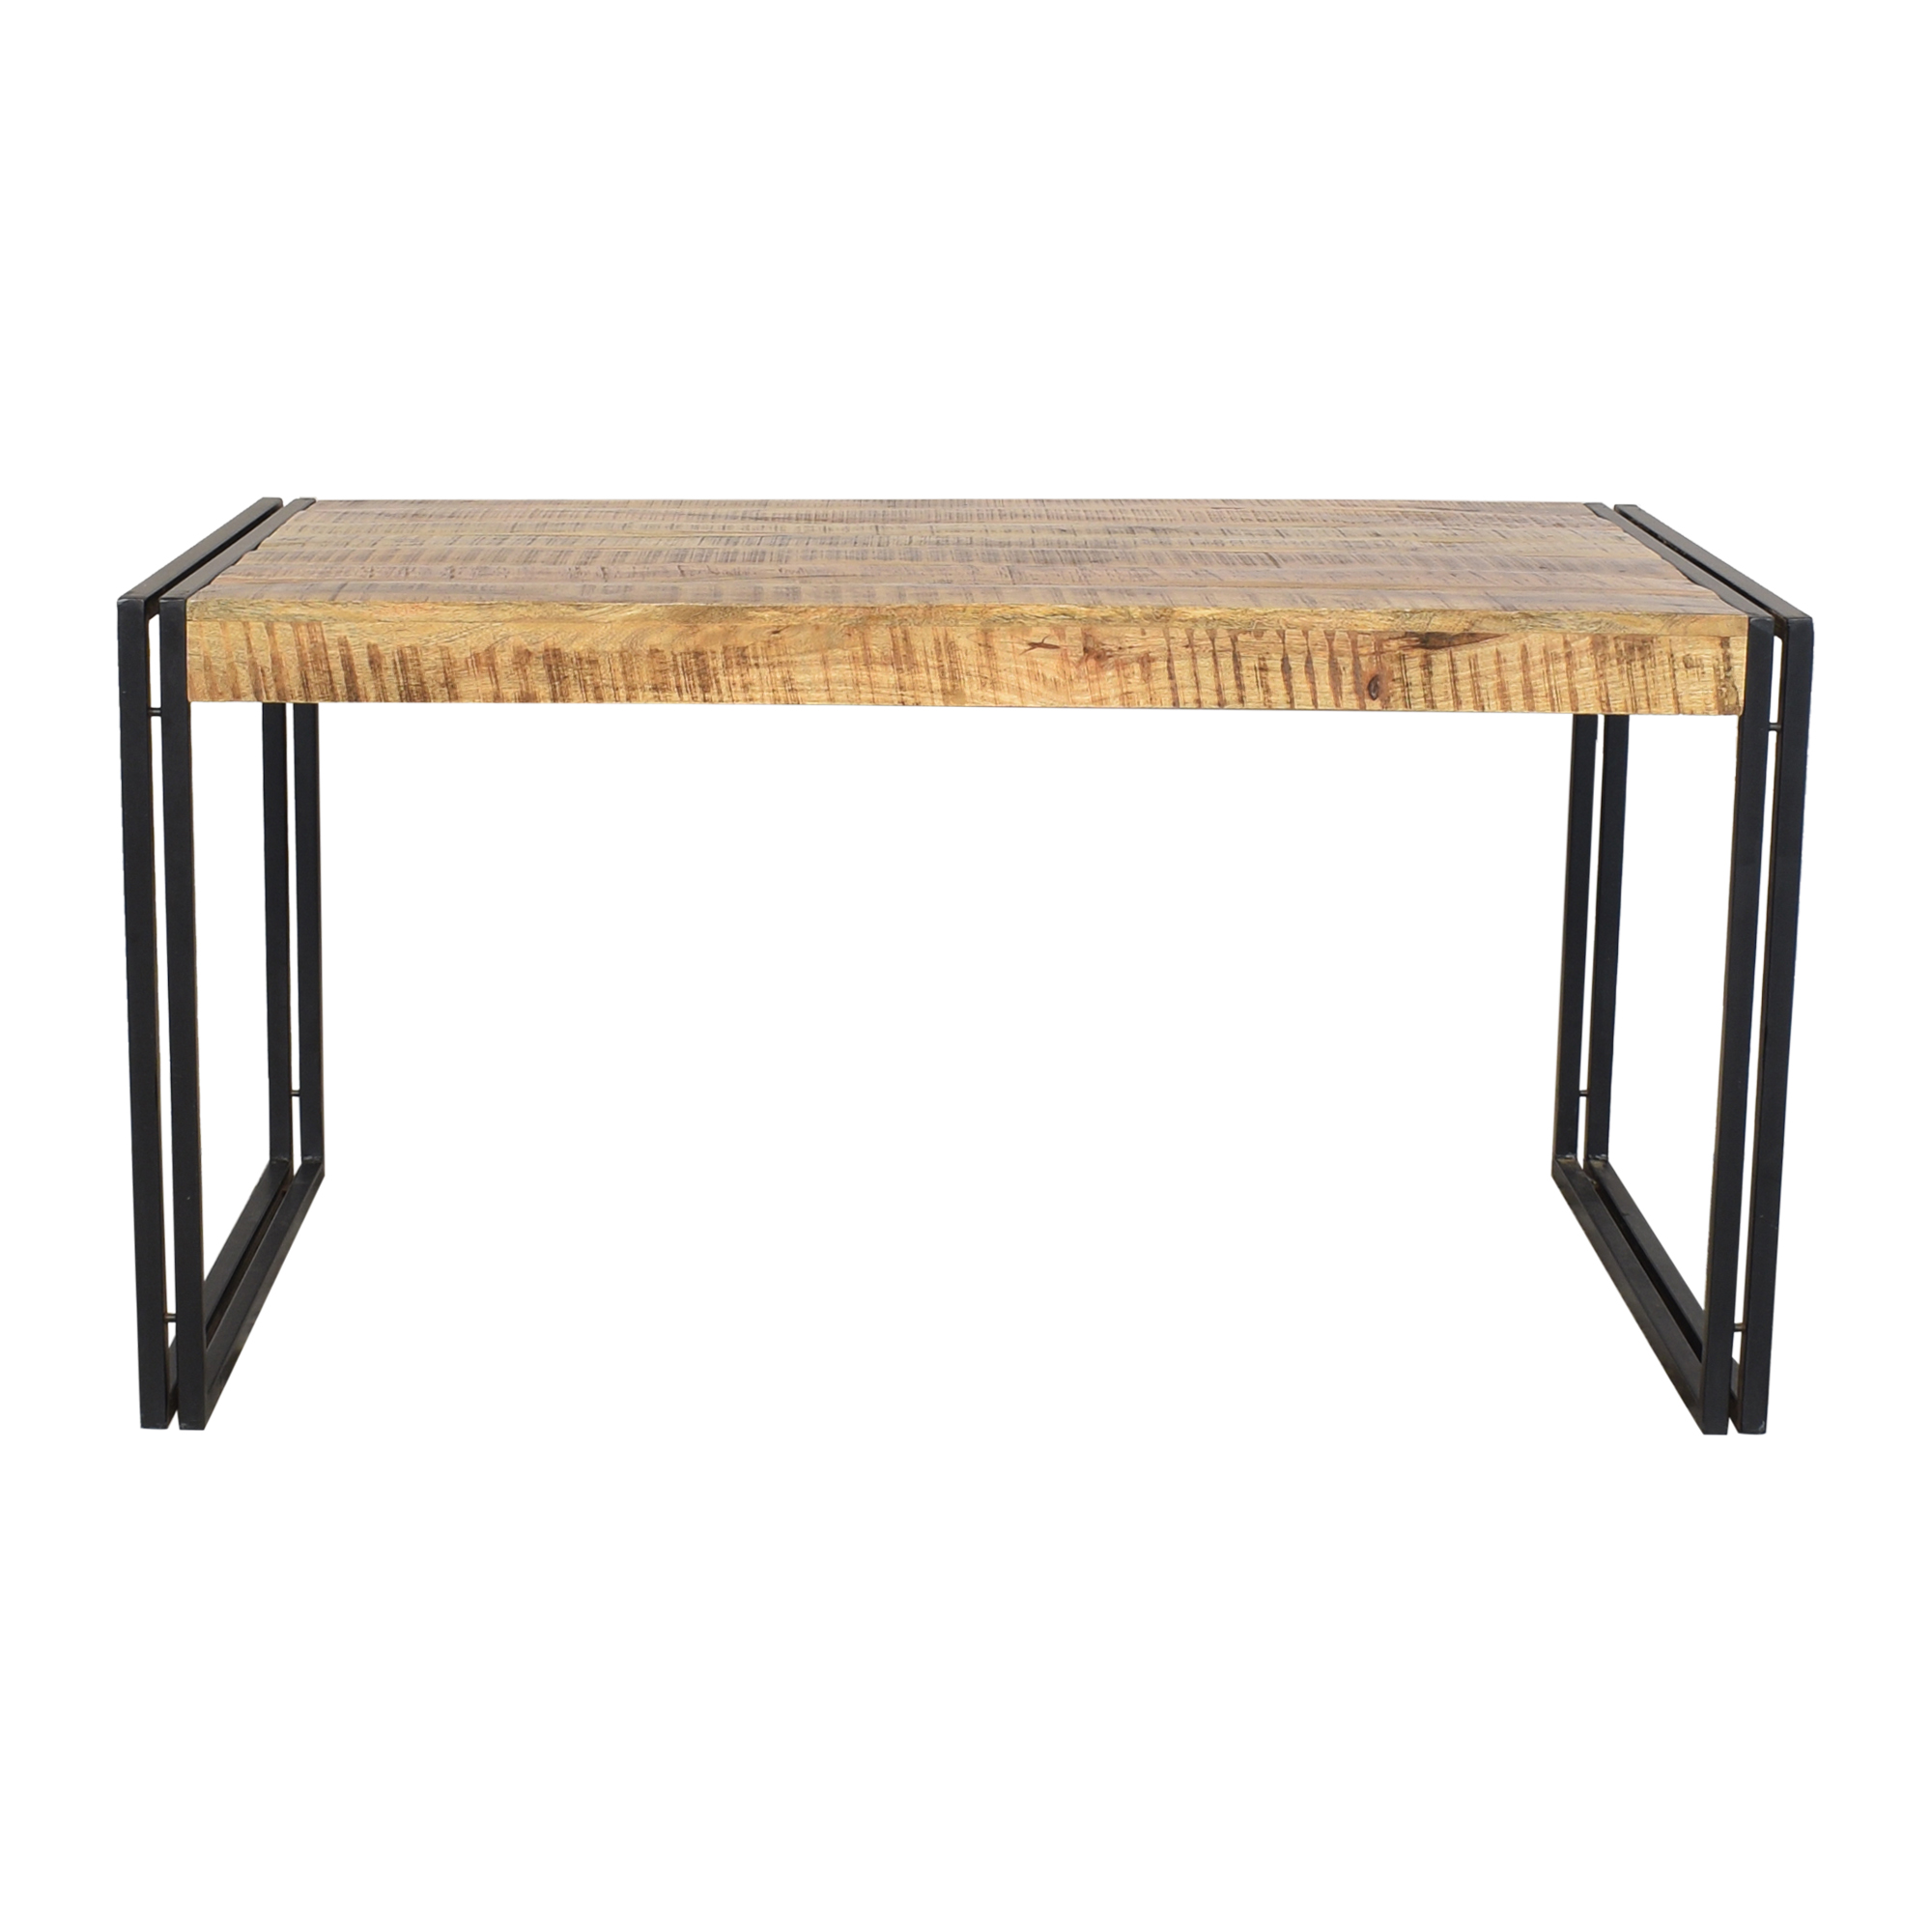 buy Timbergirl Timbergirl Industrial Dining Table online